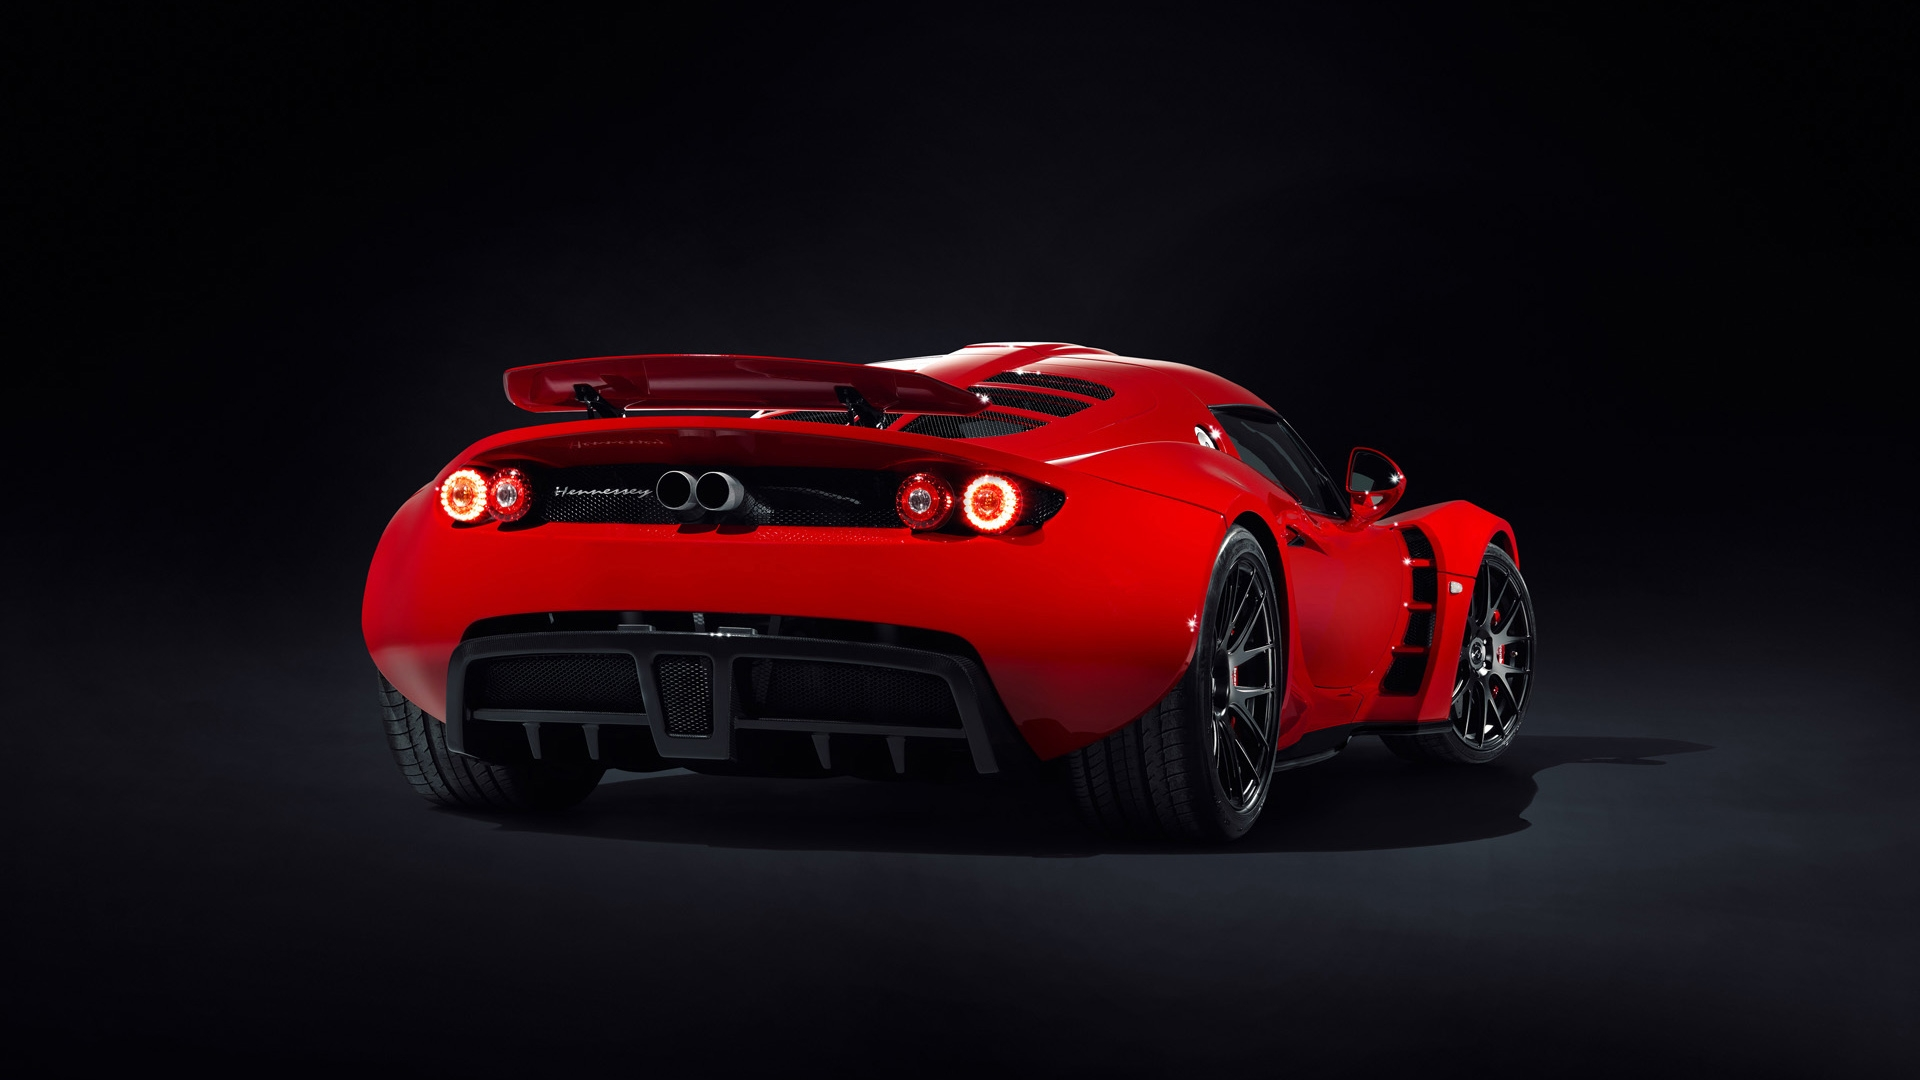 hennessey venom gt rear high definition wallpapers hd